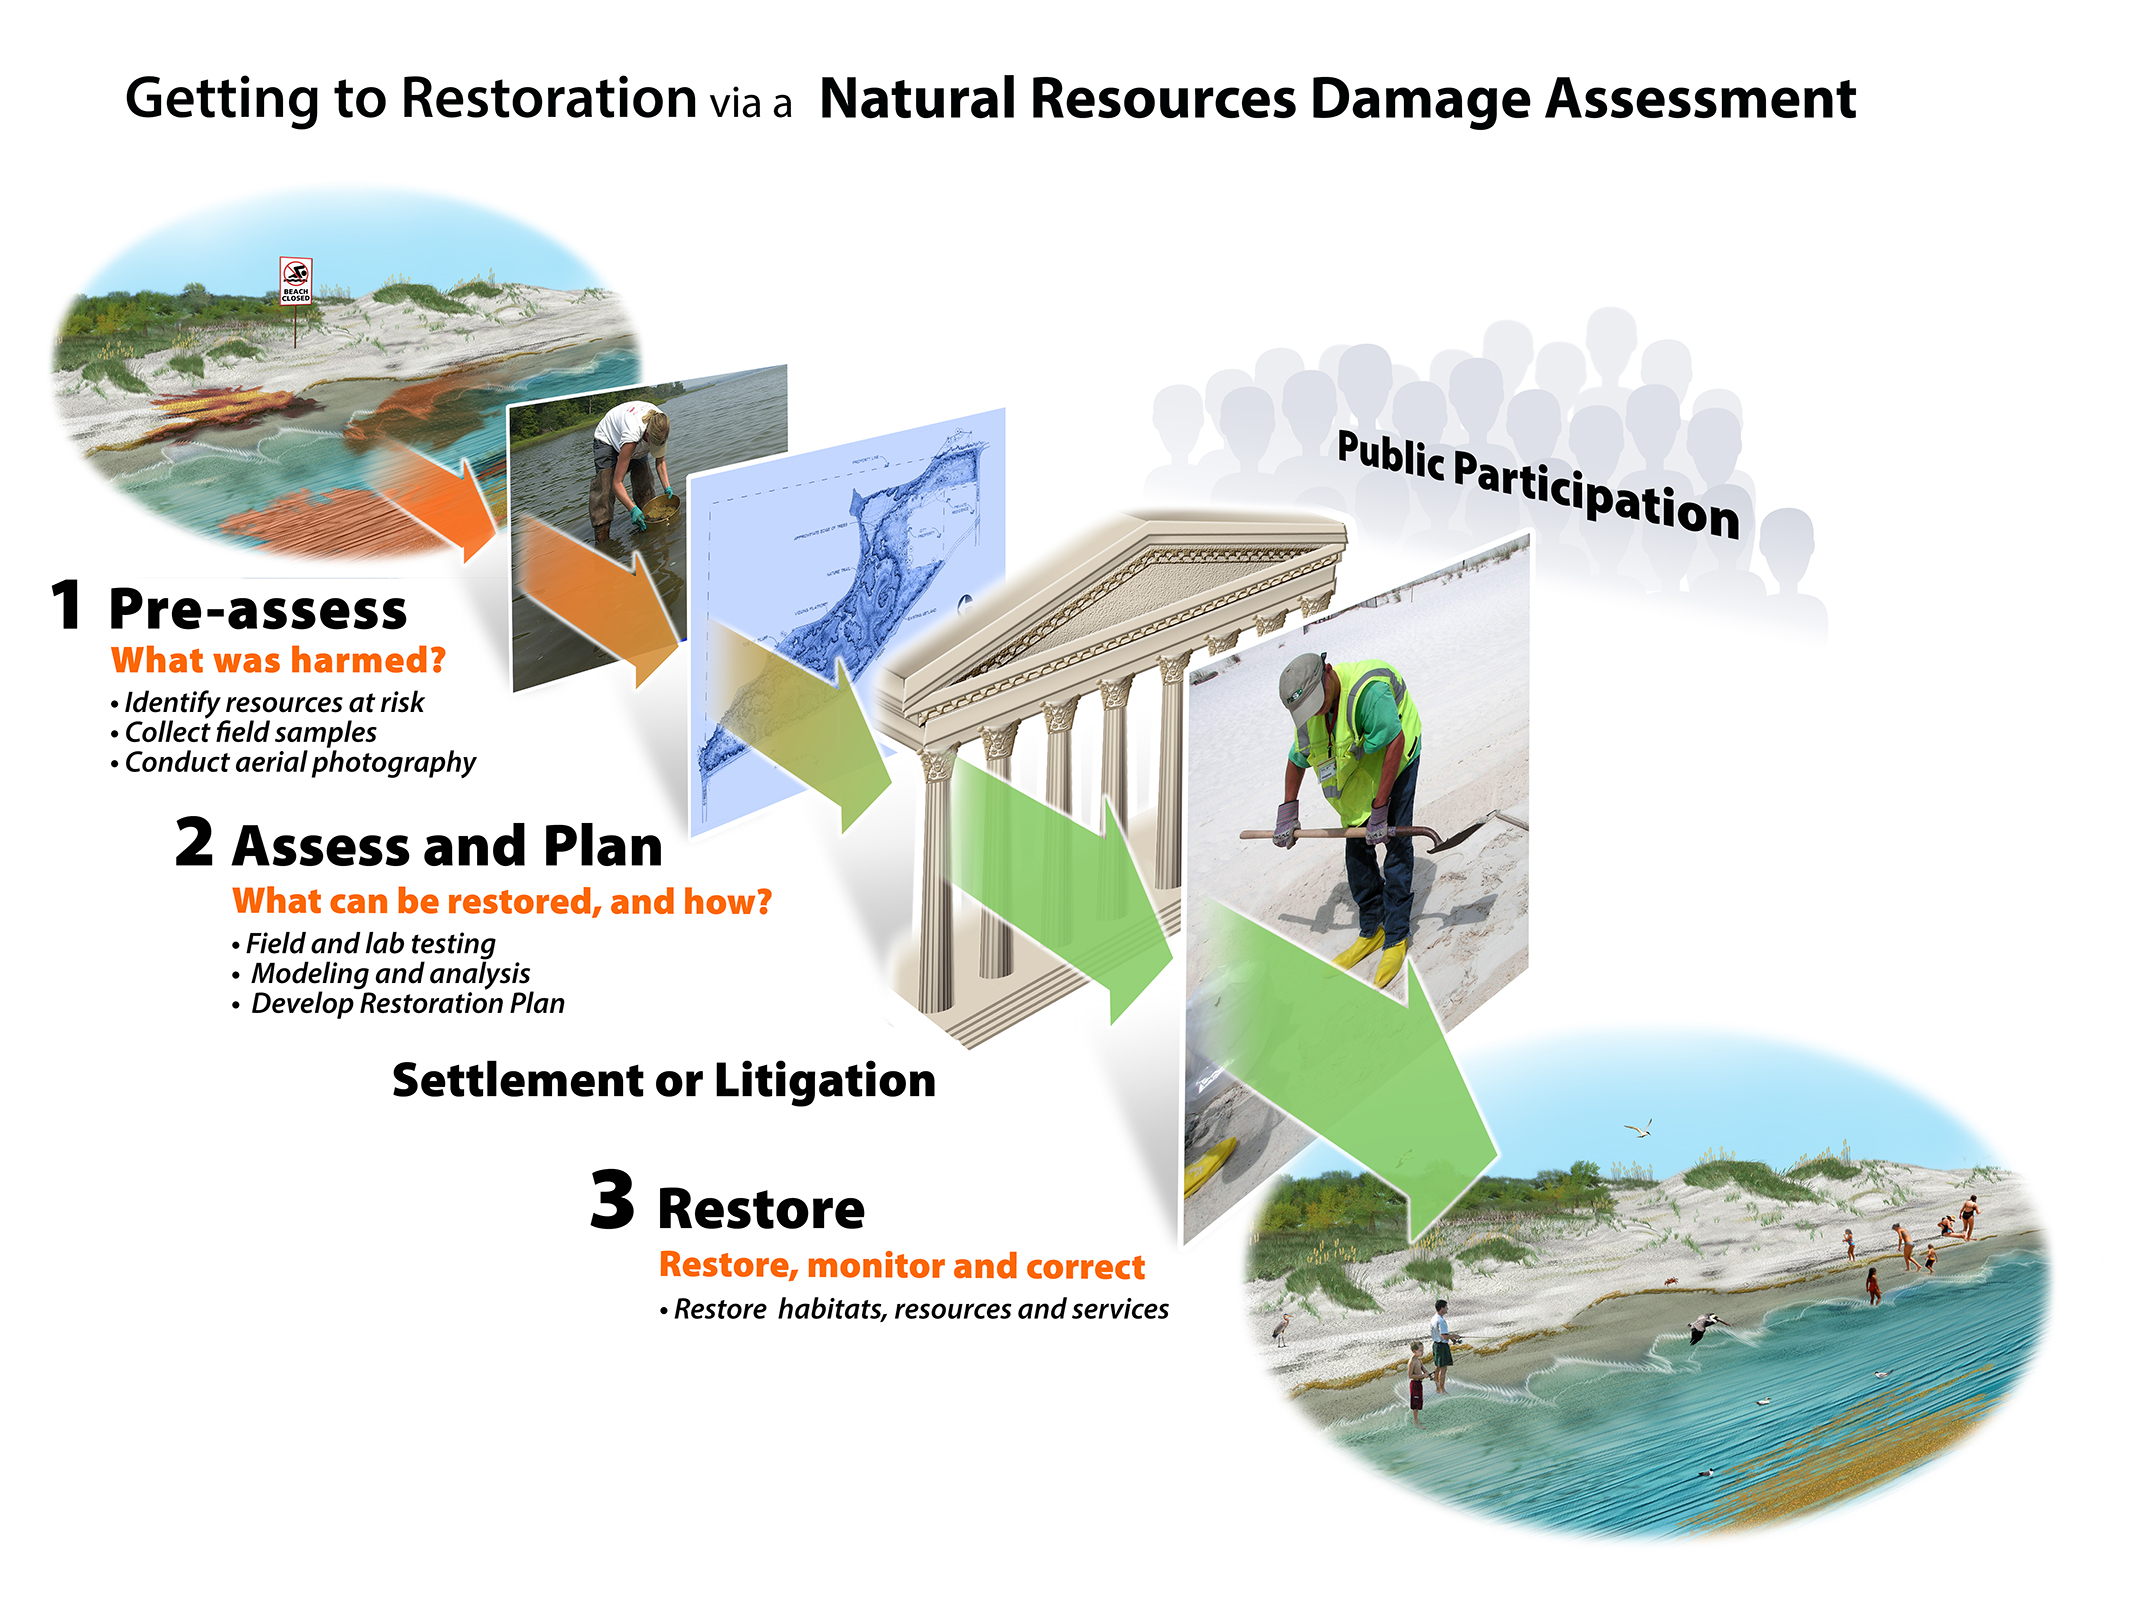 The NRDA process, illustrated in a series of overlapping illustrations